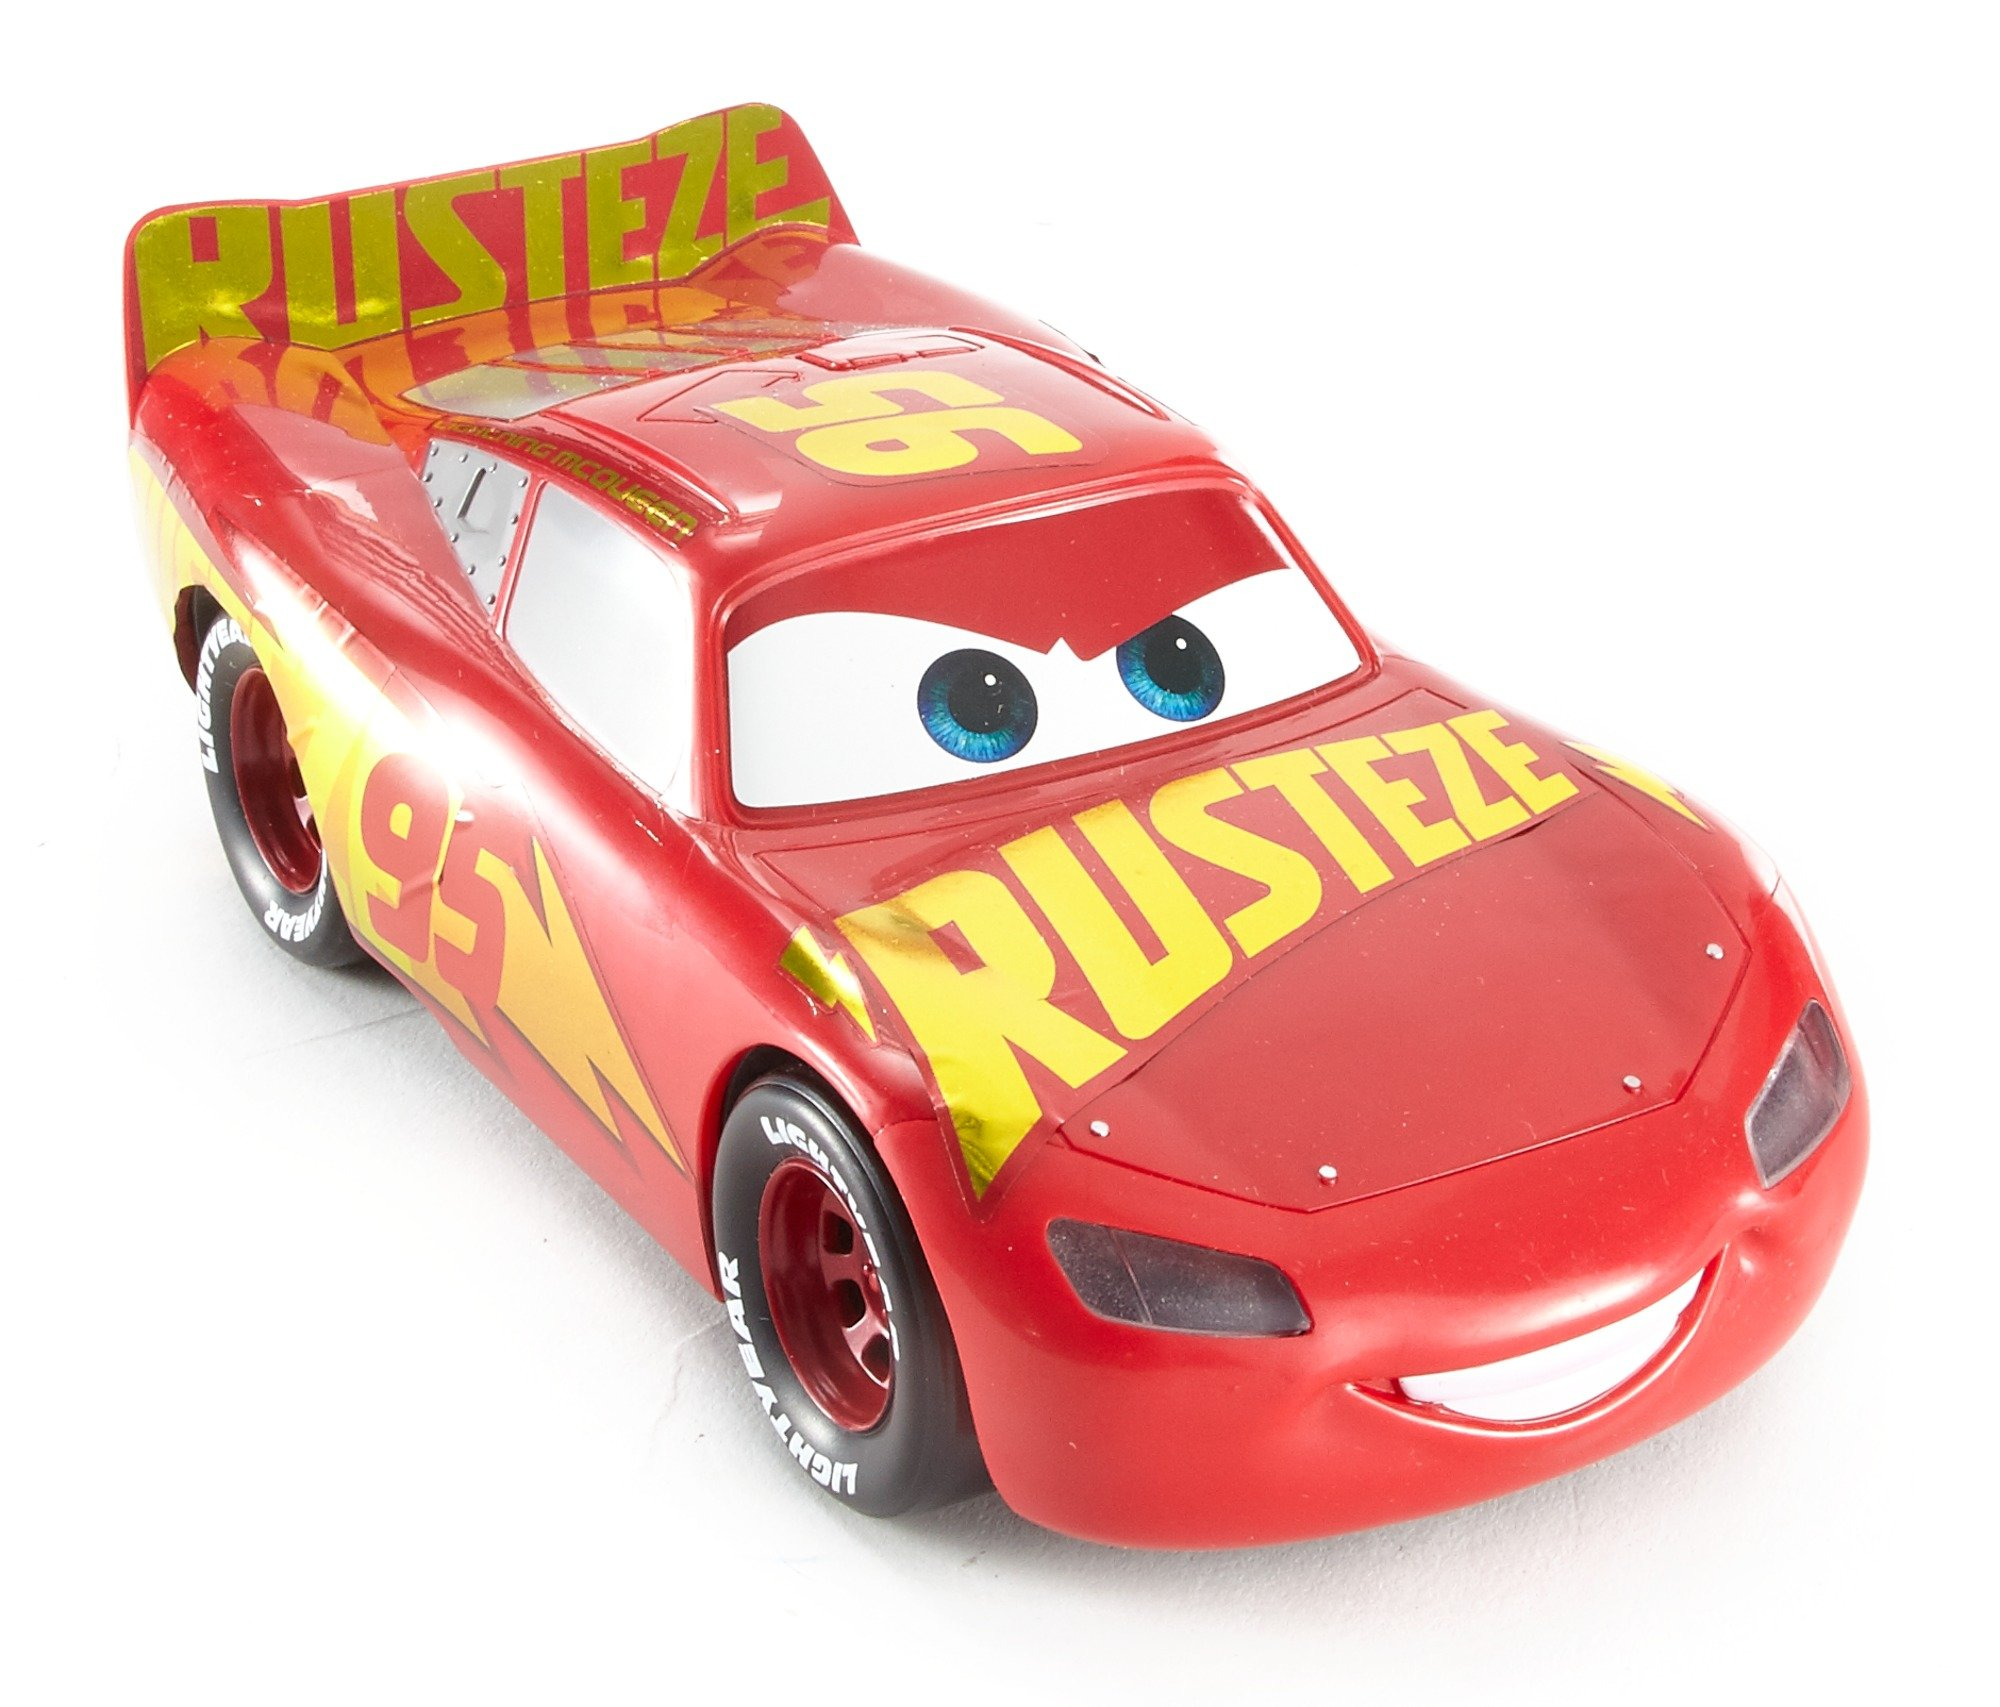 Talking Rust Eze Racing Center Lightning Mcqueen Vehicle Disney